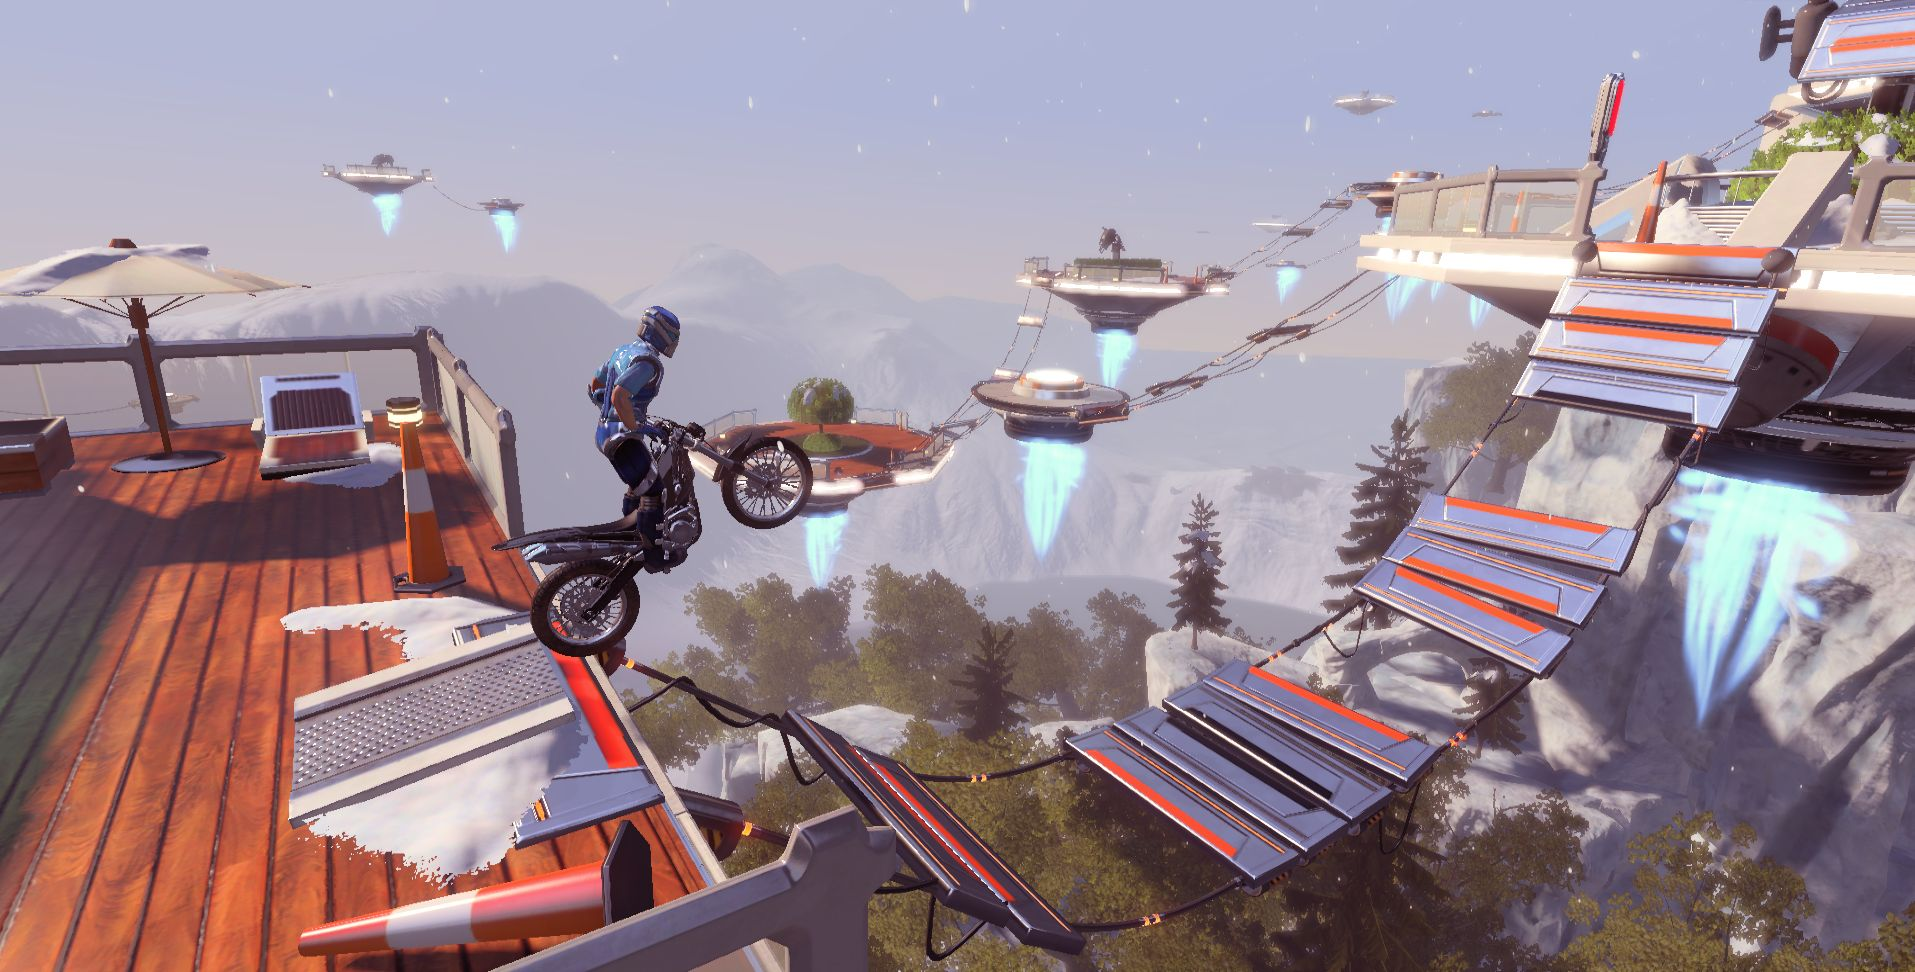 Empire of the Sky DLC Released for Trials Fusion